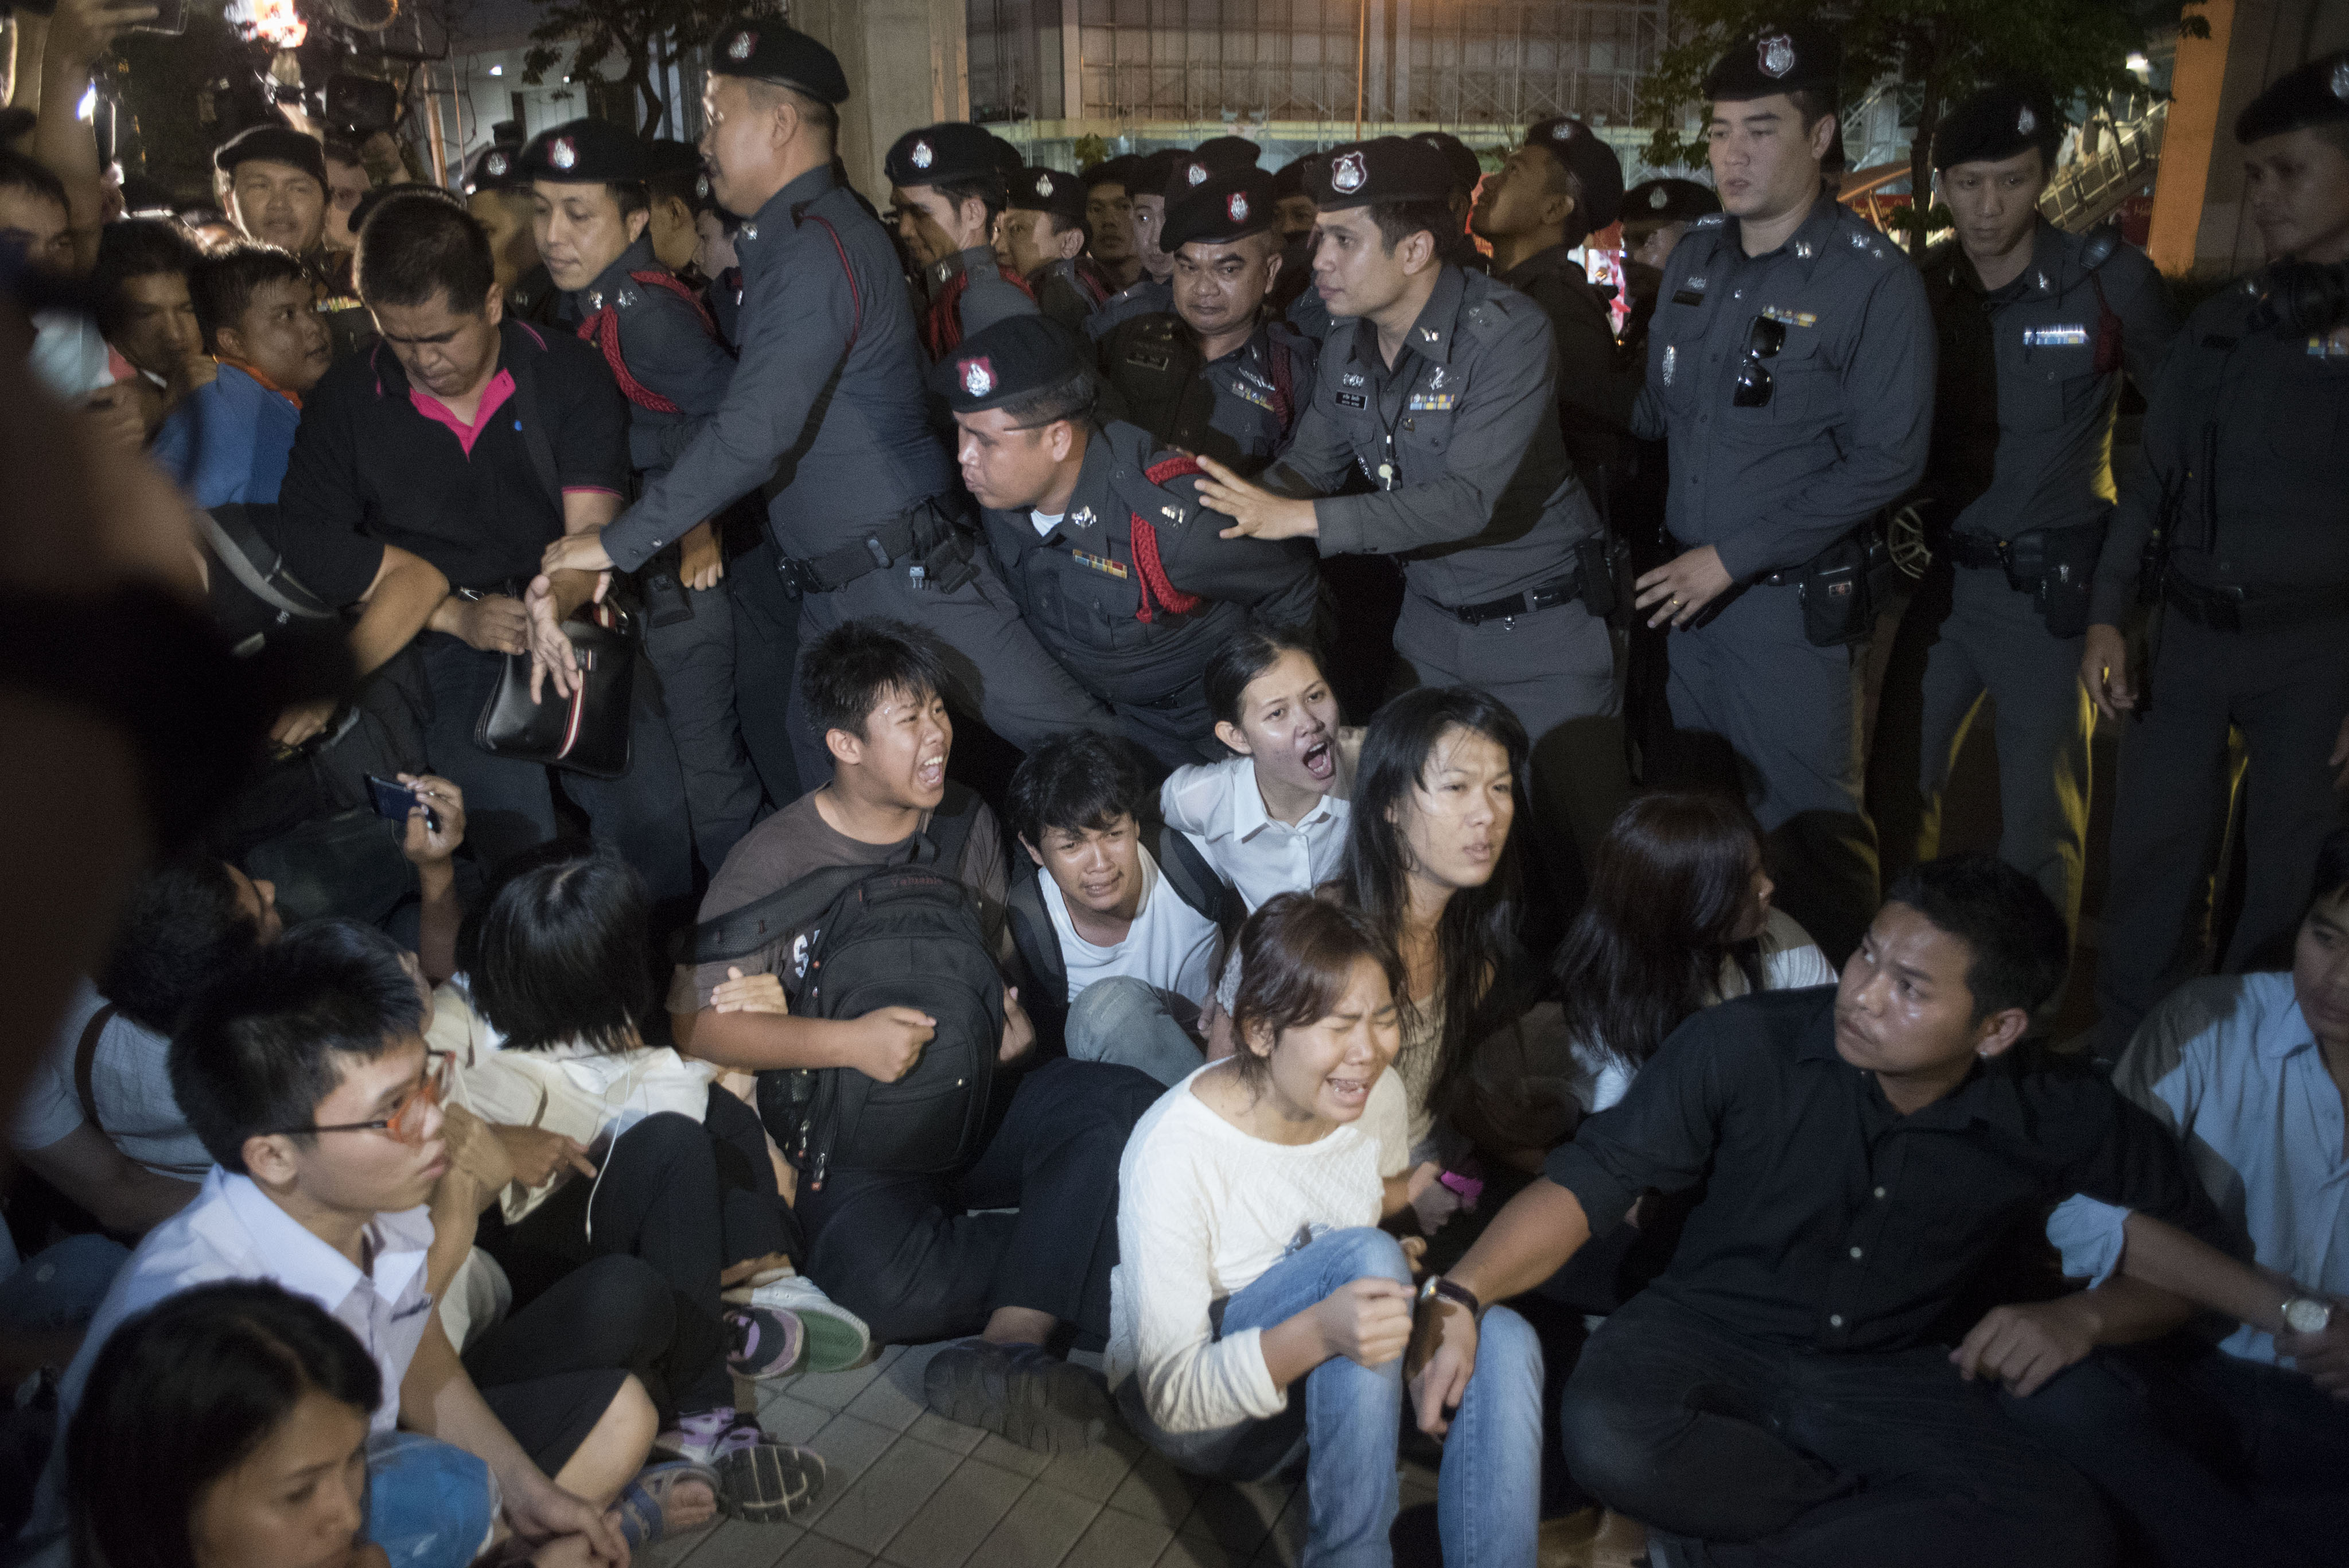 Thai police arrest students during an antijunta demonstration on May 22, 2015, in Bangkok